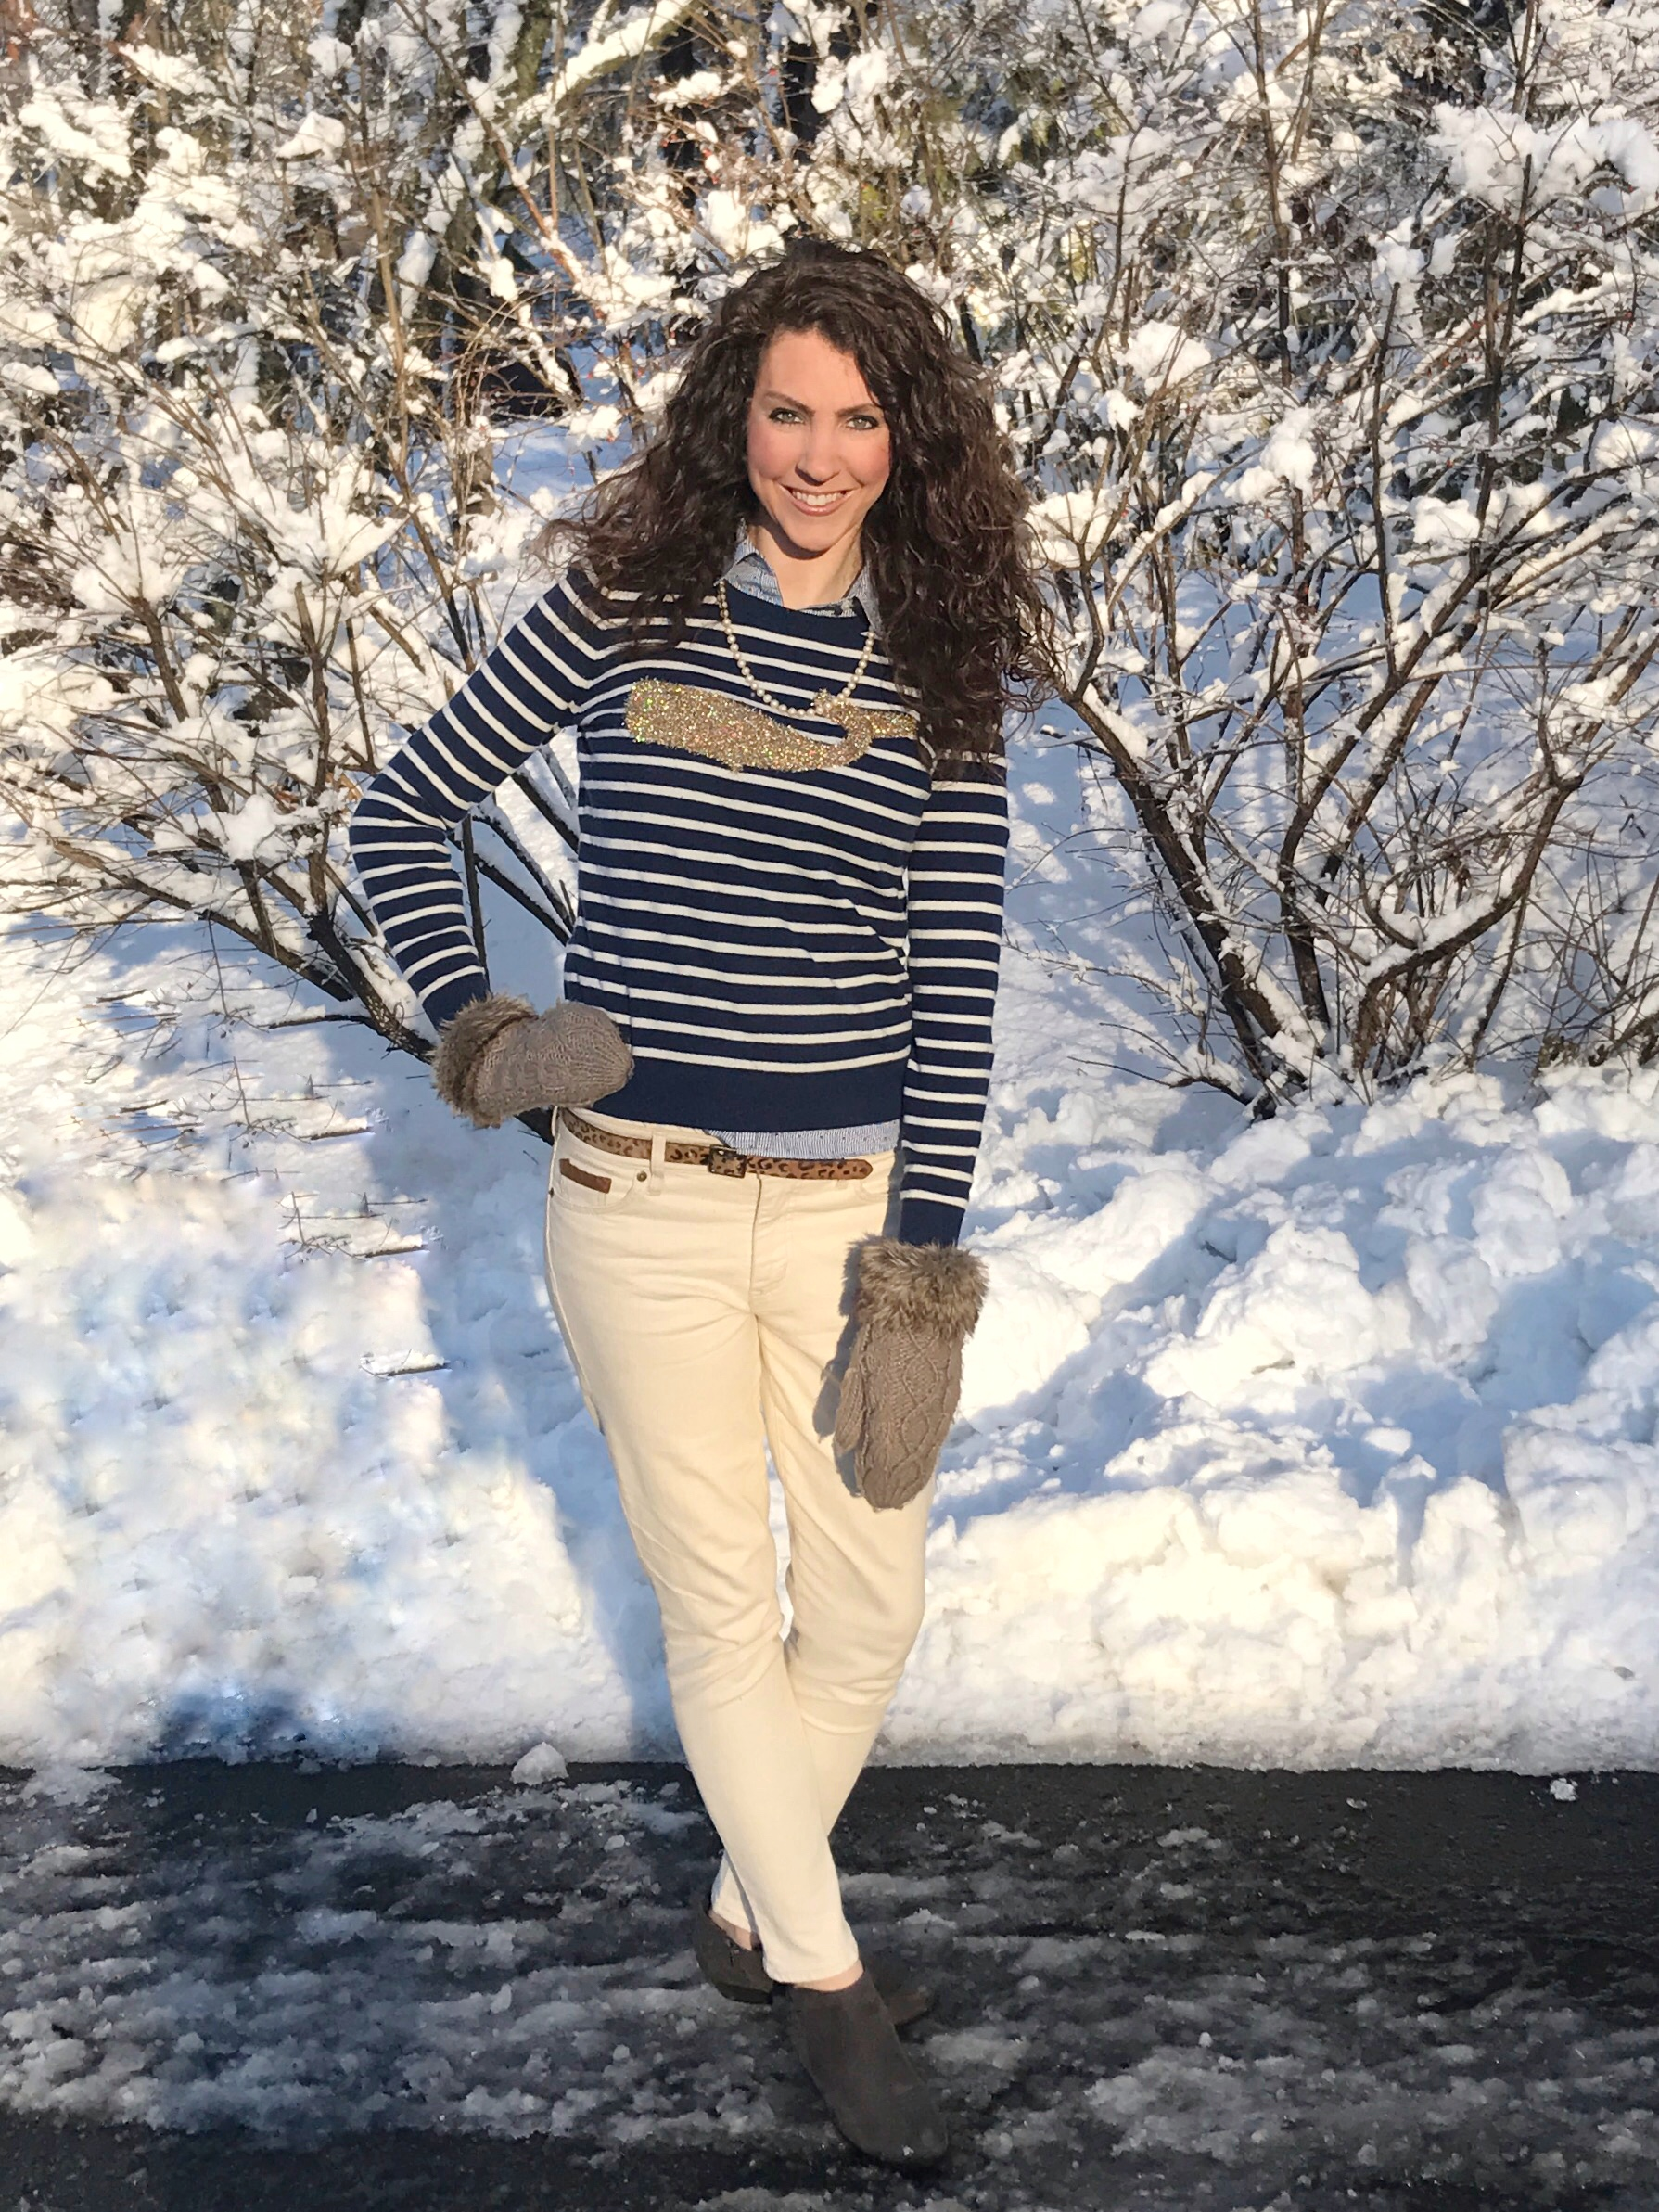 Talbots Whale Sweater and Ivory Ralph Lauren Jeans with Jack Rogers Booties. From the Closet - From the Family With Love